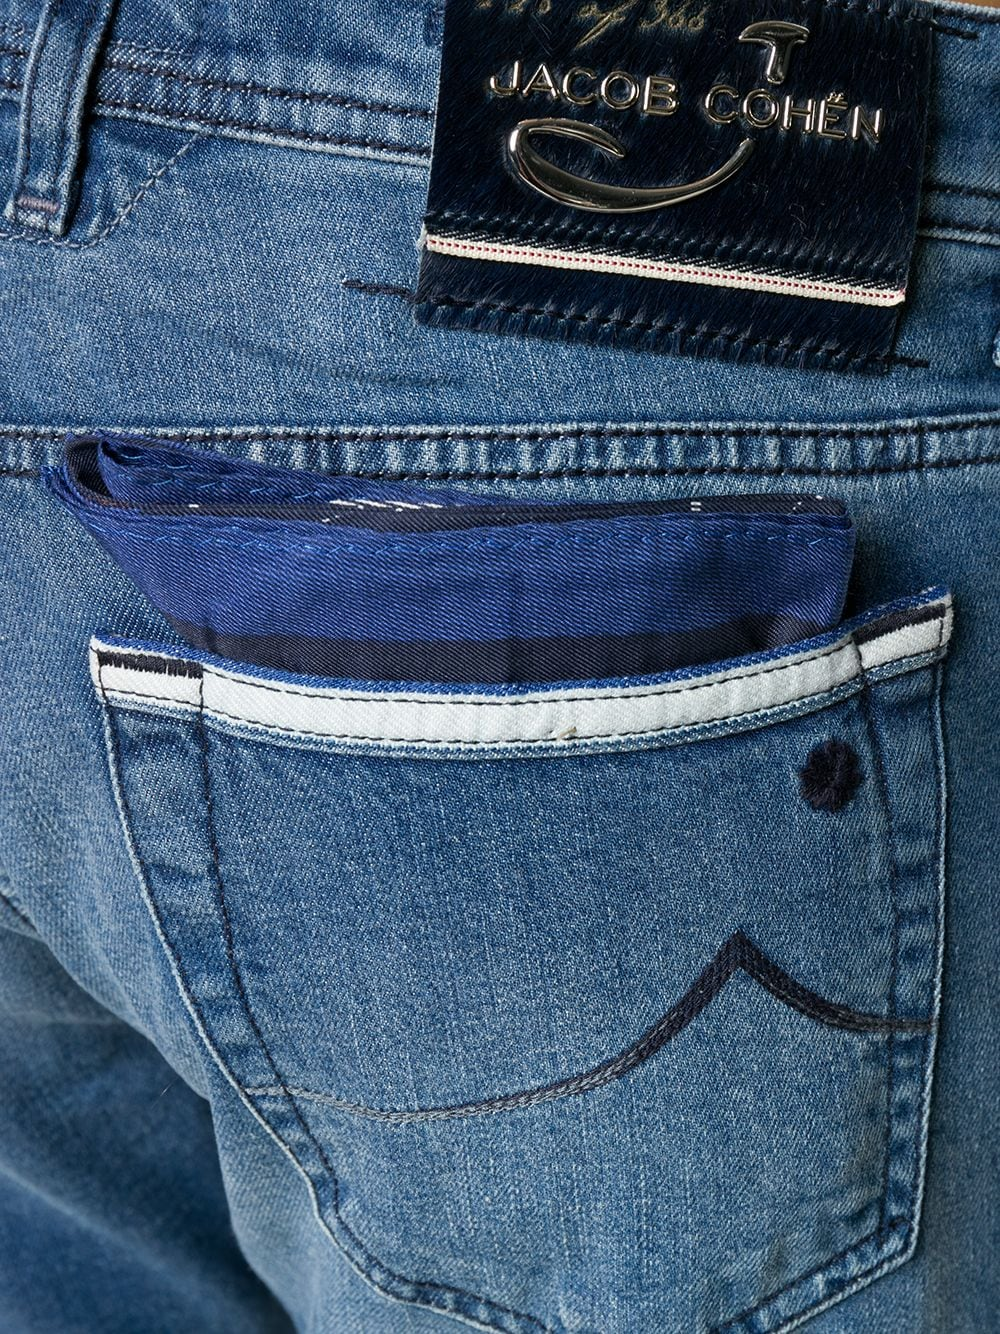 Immagine di Jacob Cohen | Limited Edition Jeans